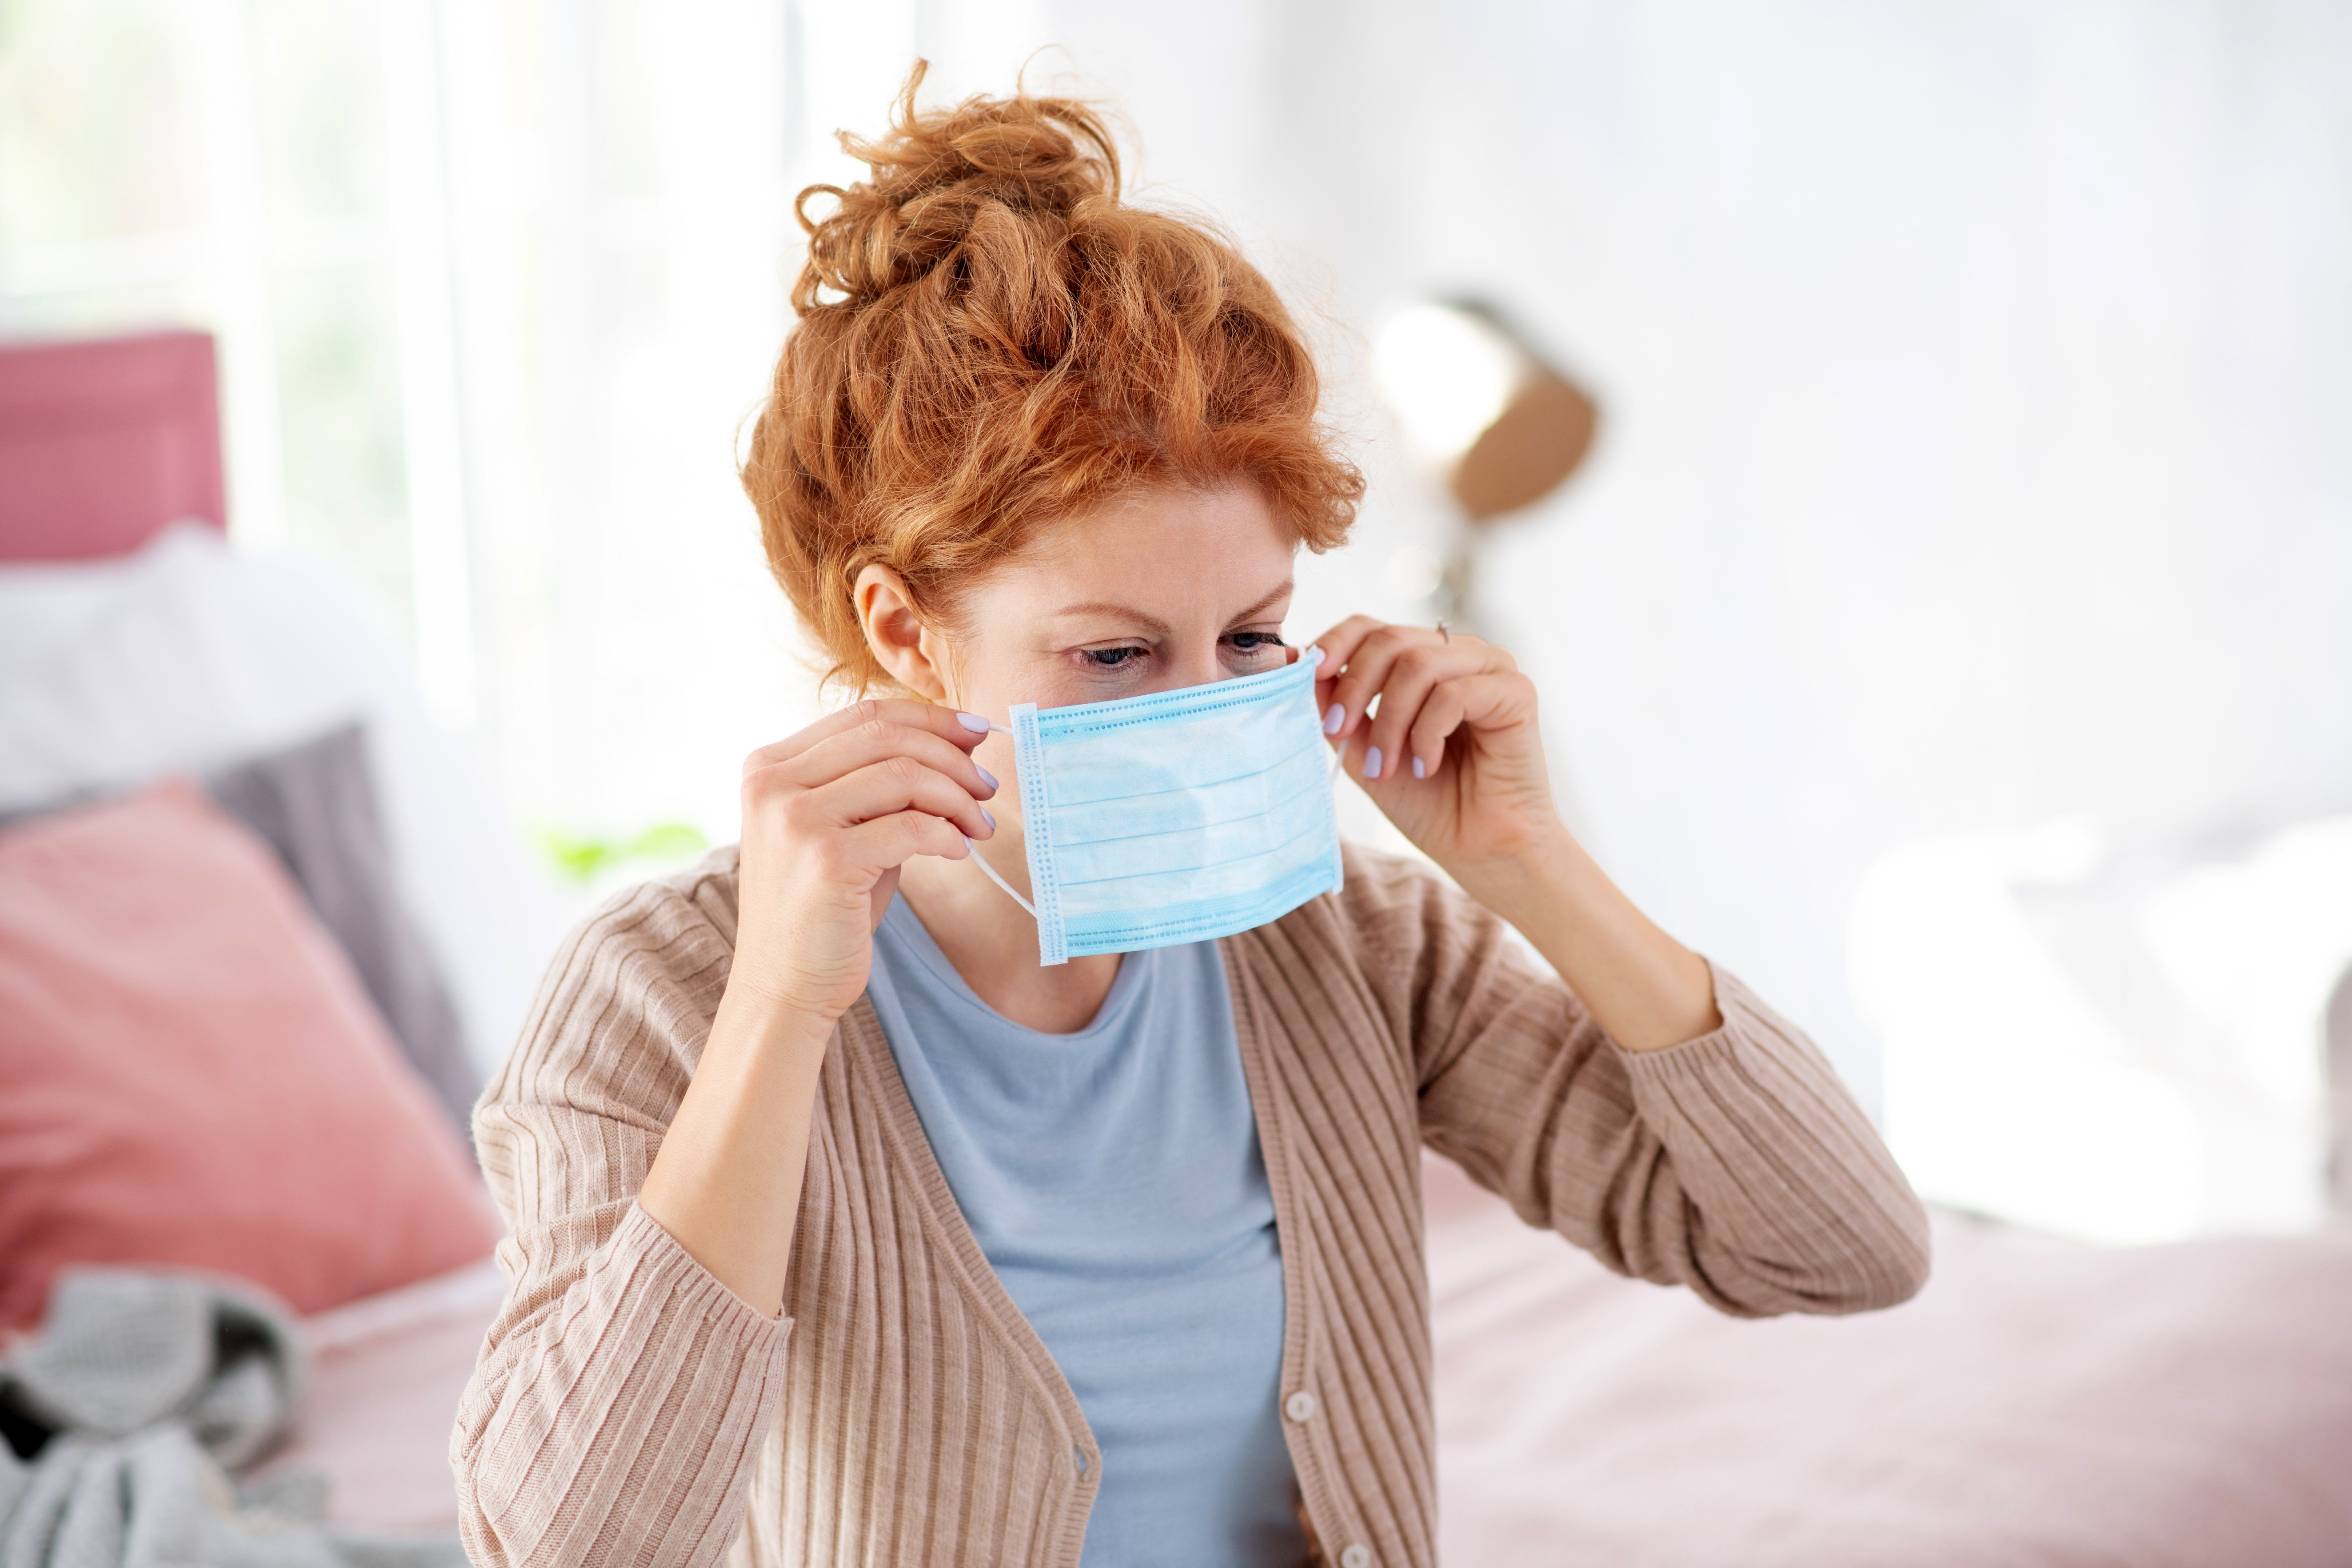 Red-haired woman putting mask on while having flu